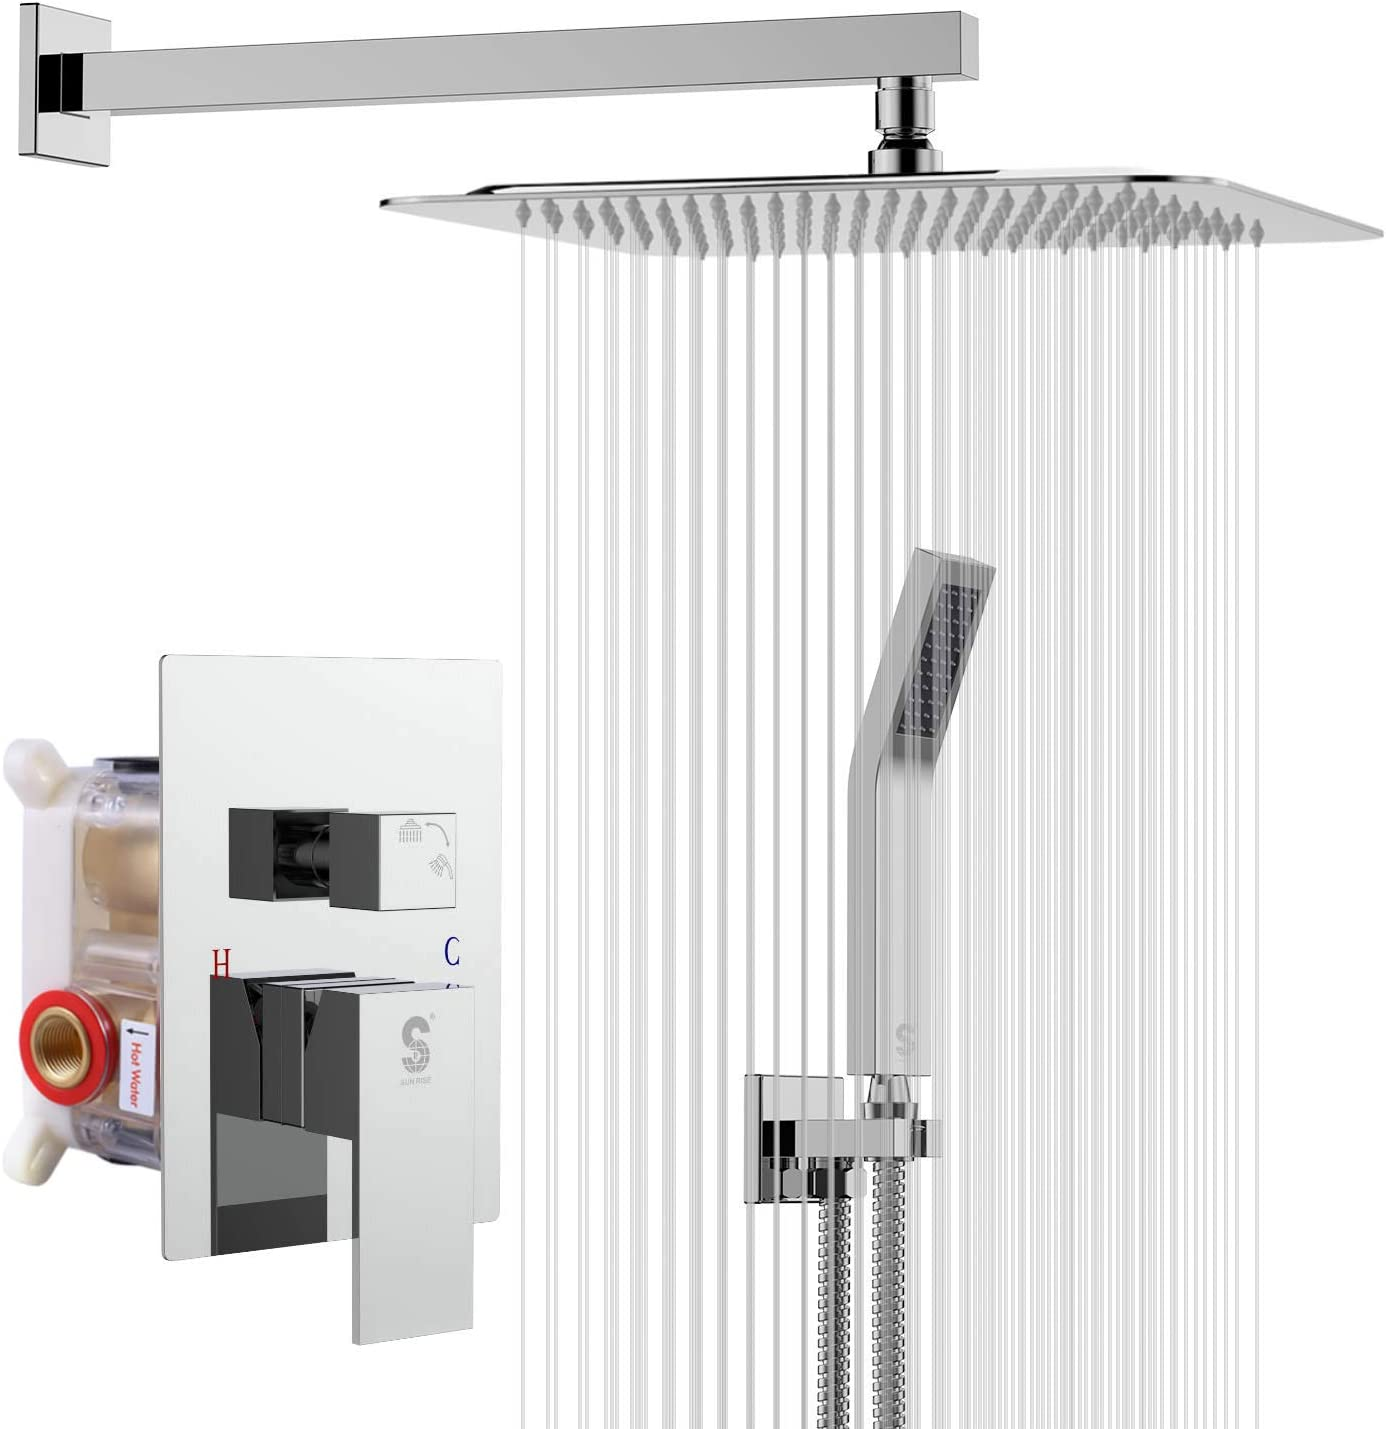 SR SUN RISE SRSH-F5043 10 Inches Bathroom Luxury Rain Mixer Shower Combo Set Wall Mounted Rainfall Shower Head System Polished Chrome Shower Faucet Rough-in Valve Body and Trim Included - -